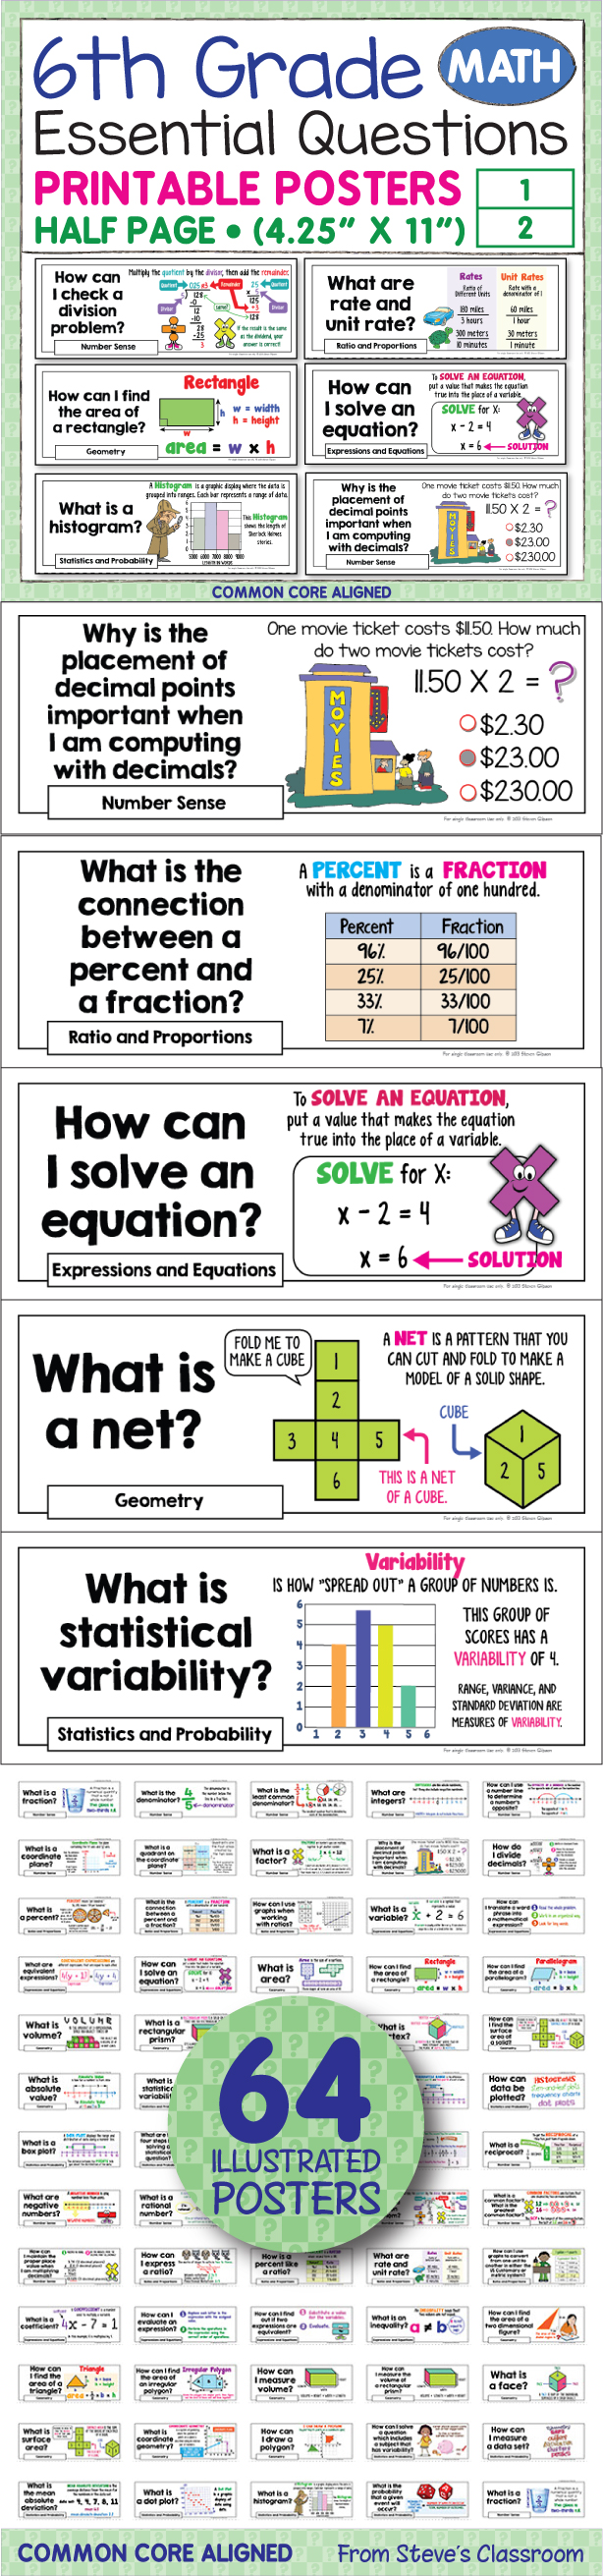 Essential questions for 6th grade math math pinterest wall bring the sixth grade math common core essential questions to life with these easy to use printable posters every question is illustrated and fandeluxe Choice Image